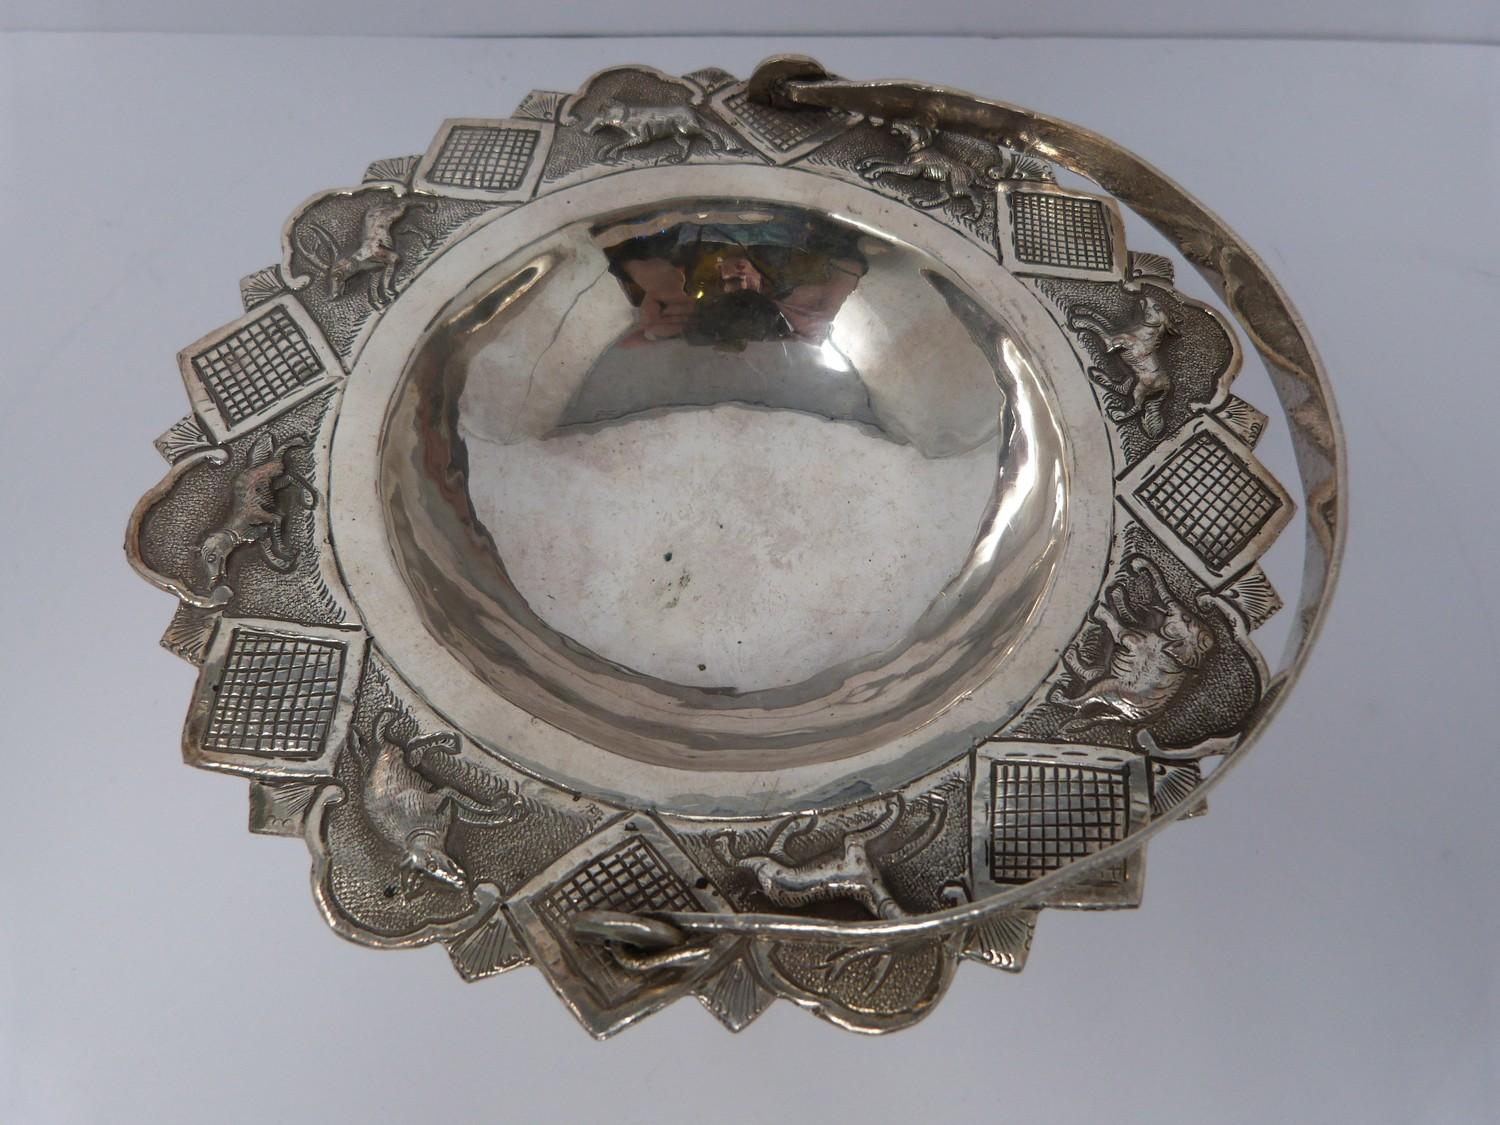 A white metal oriental handled dish, coin, silver fish pendant and white metal thai buckle, basket - Image 6 of 9